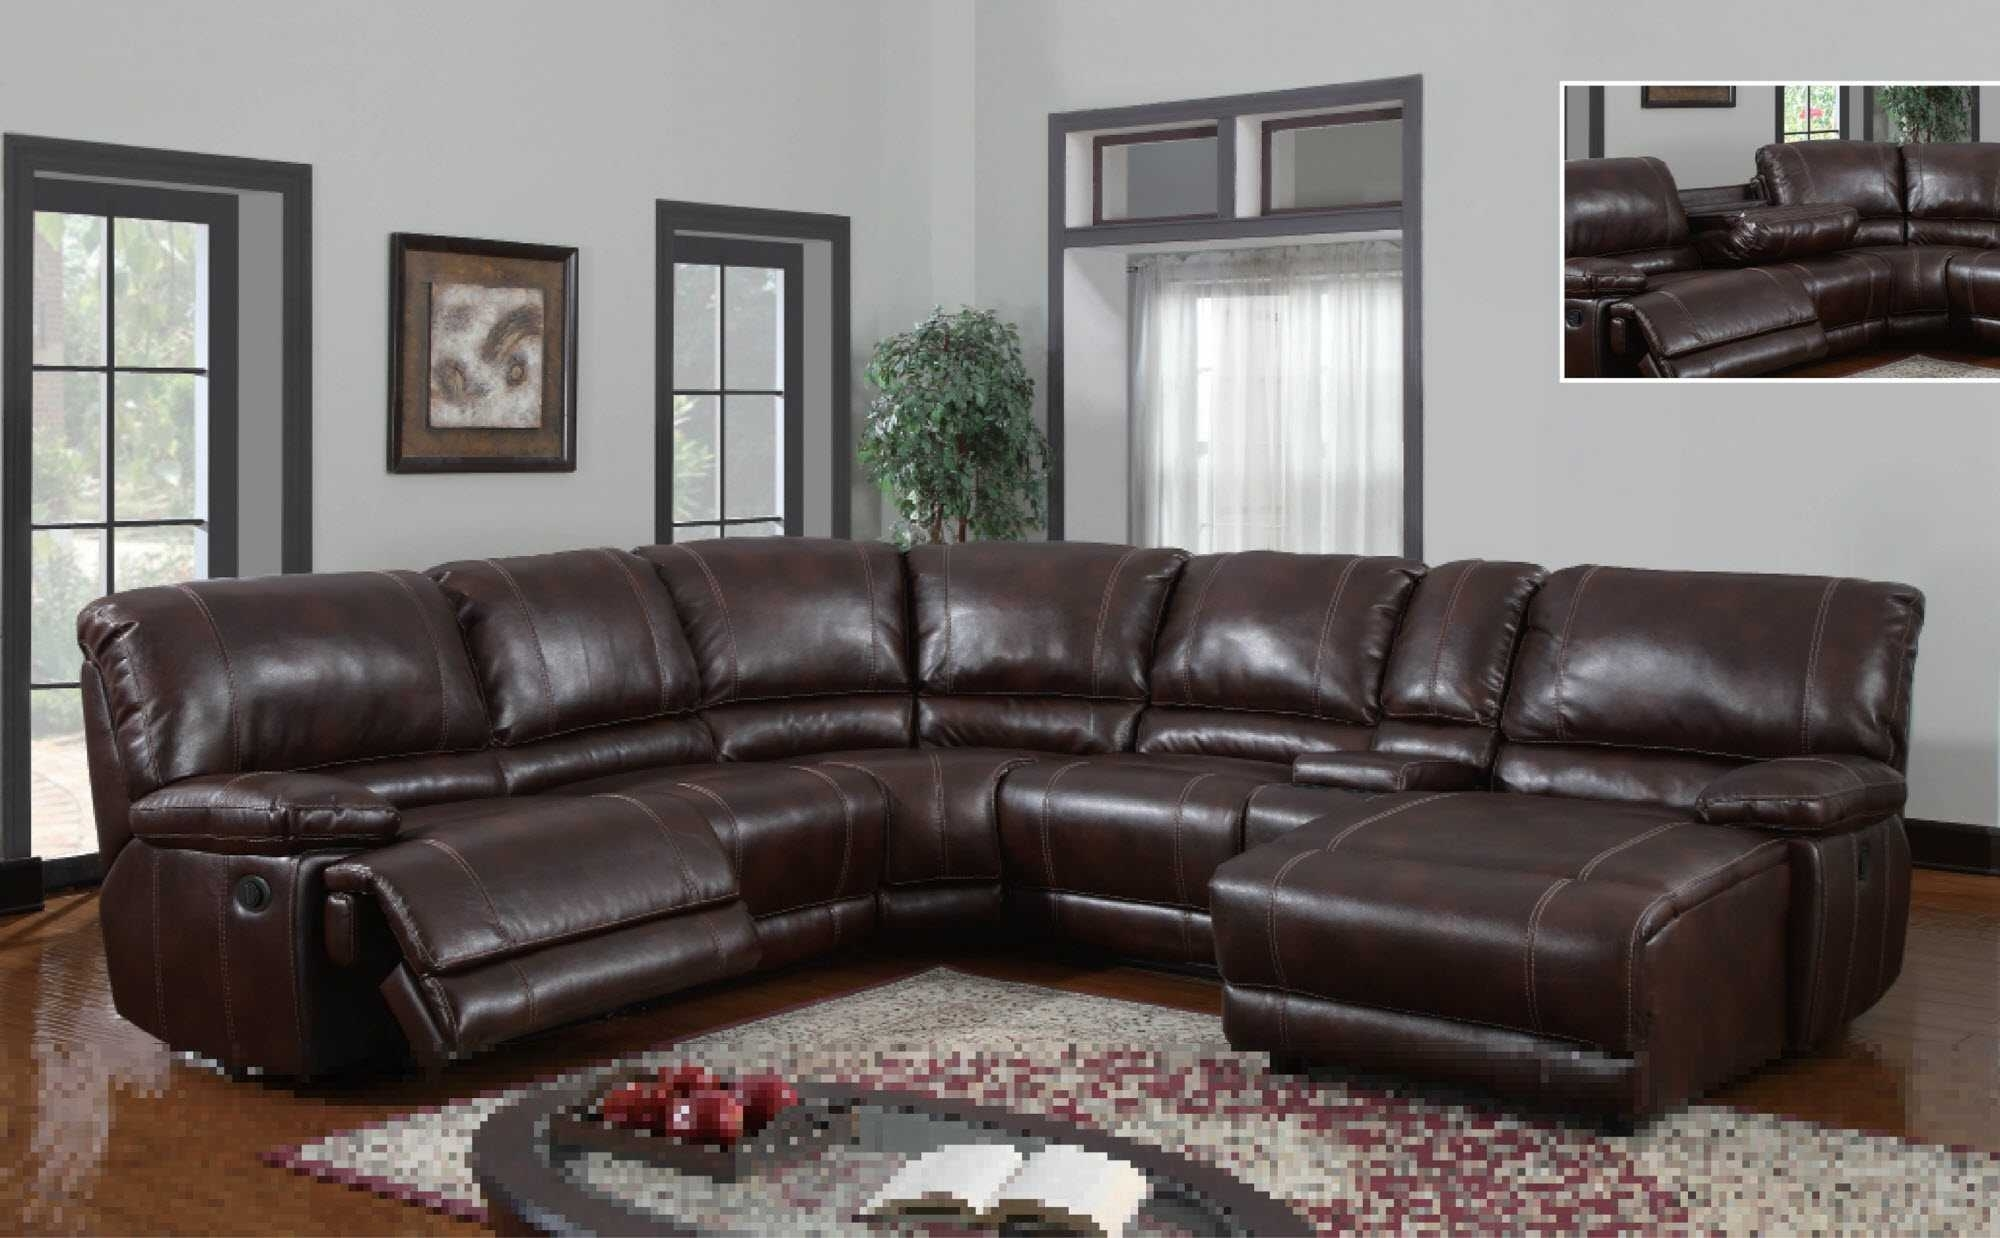 Leather Reclining Sectional Sofa Trends And Sofas With Recliners Throughout Red Leather Sectional Sofas With Recliners (Image 4 of 10)